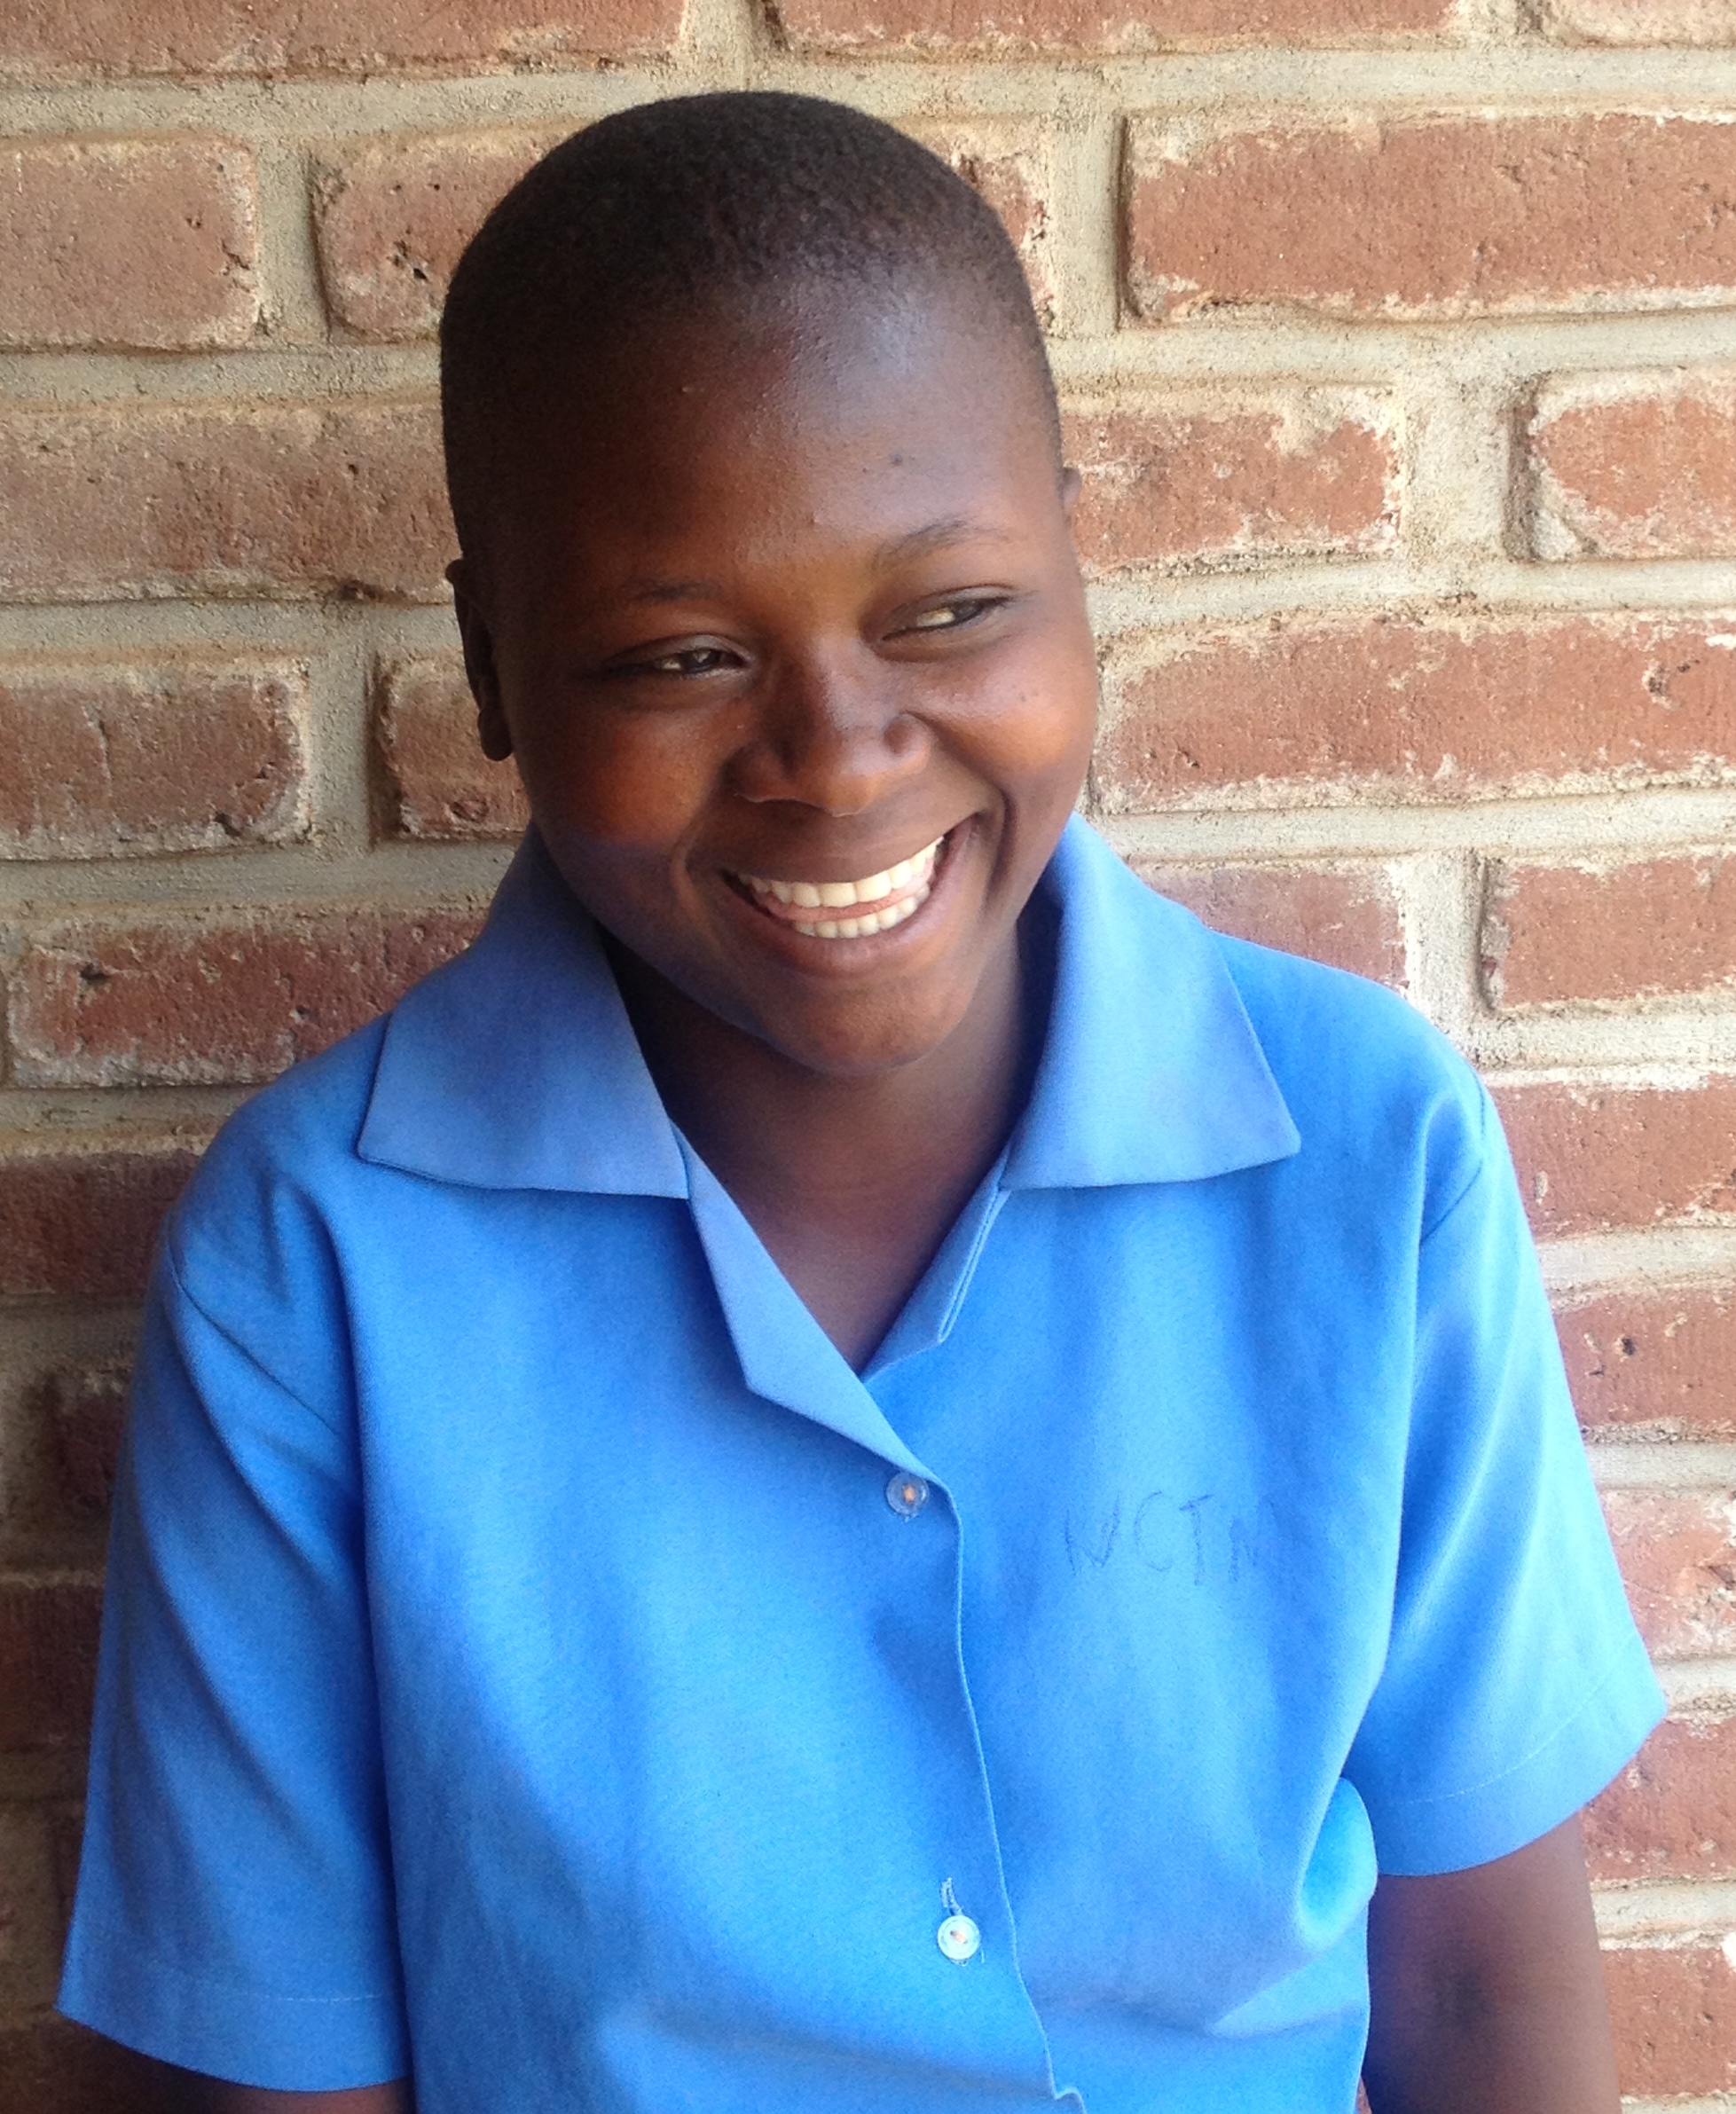 (September 7, 2015) Proceeds from the Eliza J dress sale are used to support scholar, Rose, as she begins her third year at partner, Children of the Nations, ICA school in Lilongwe, Malawi.